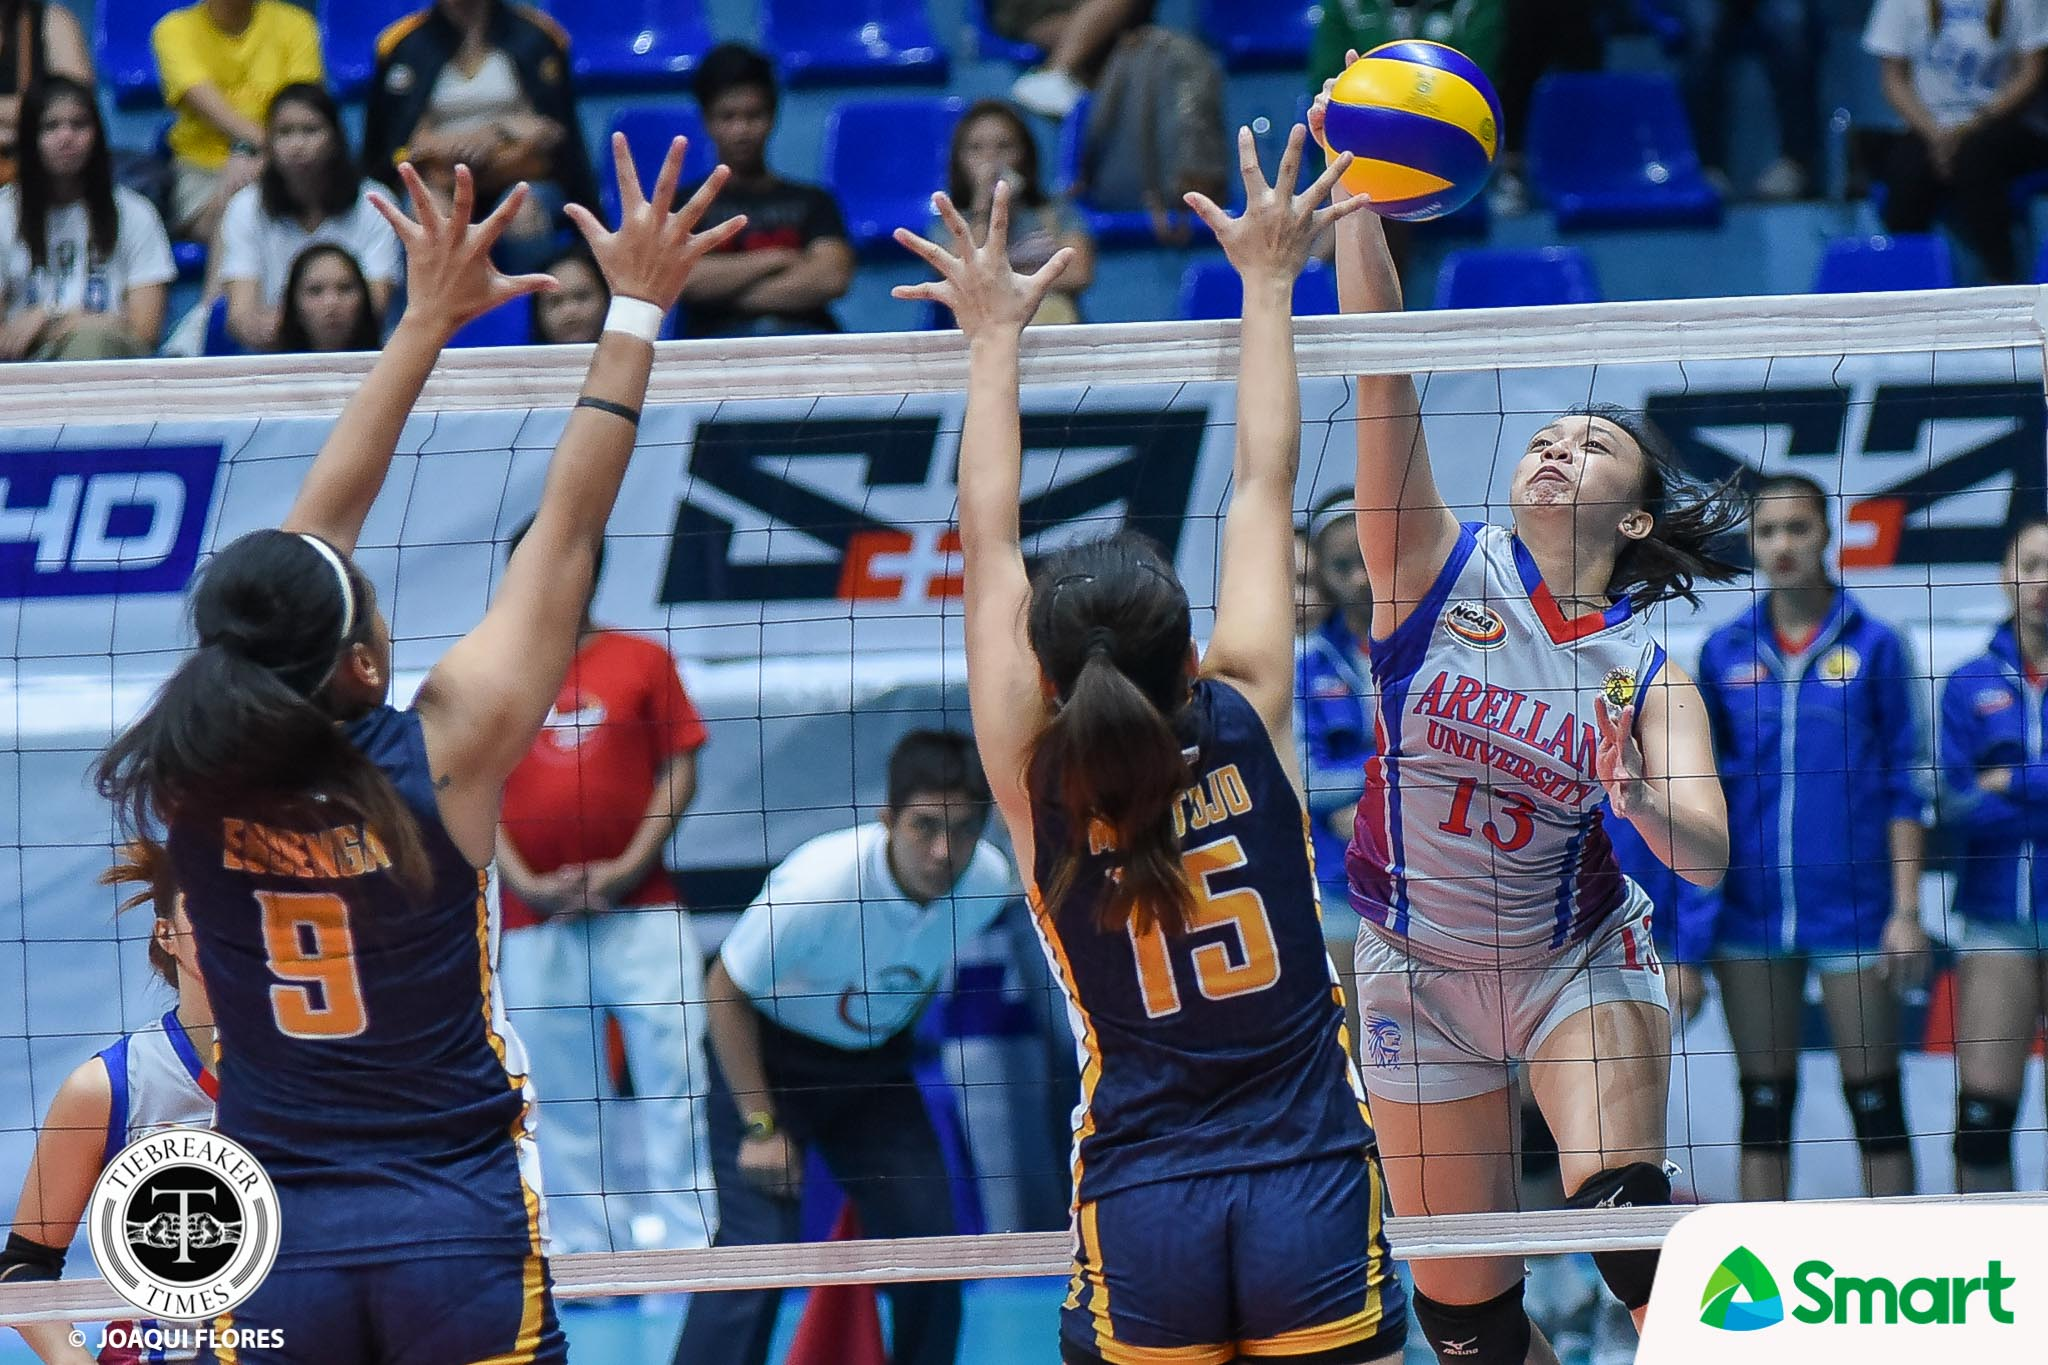 Tiebreaker Times Arellano ends JRU's cinderella run, cruises to second straight Finals AU NCAA News SBC Volleyball  Shola Alvarez Sarah Verutiao Regine Arocha Obet Javier NCAA Season 93 Women's Volleyball NCAA Season 93 Mia Teoseco JRU Women's Volleyball Faye Ramirez Dolly Versoza Arellano Women's Volleyball Andrez Marzan